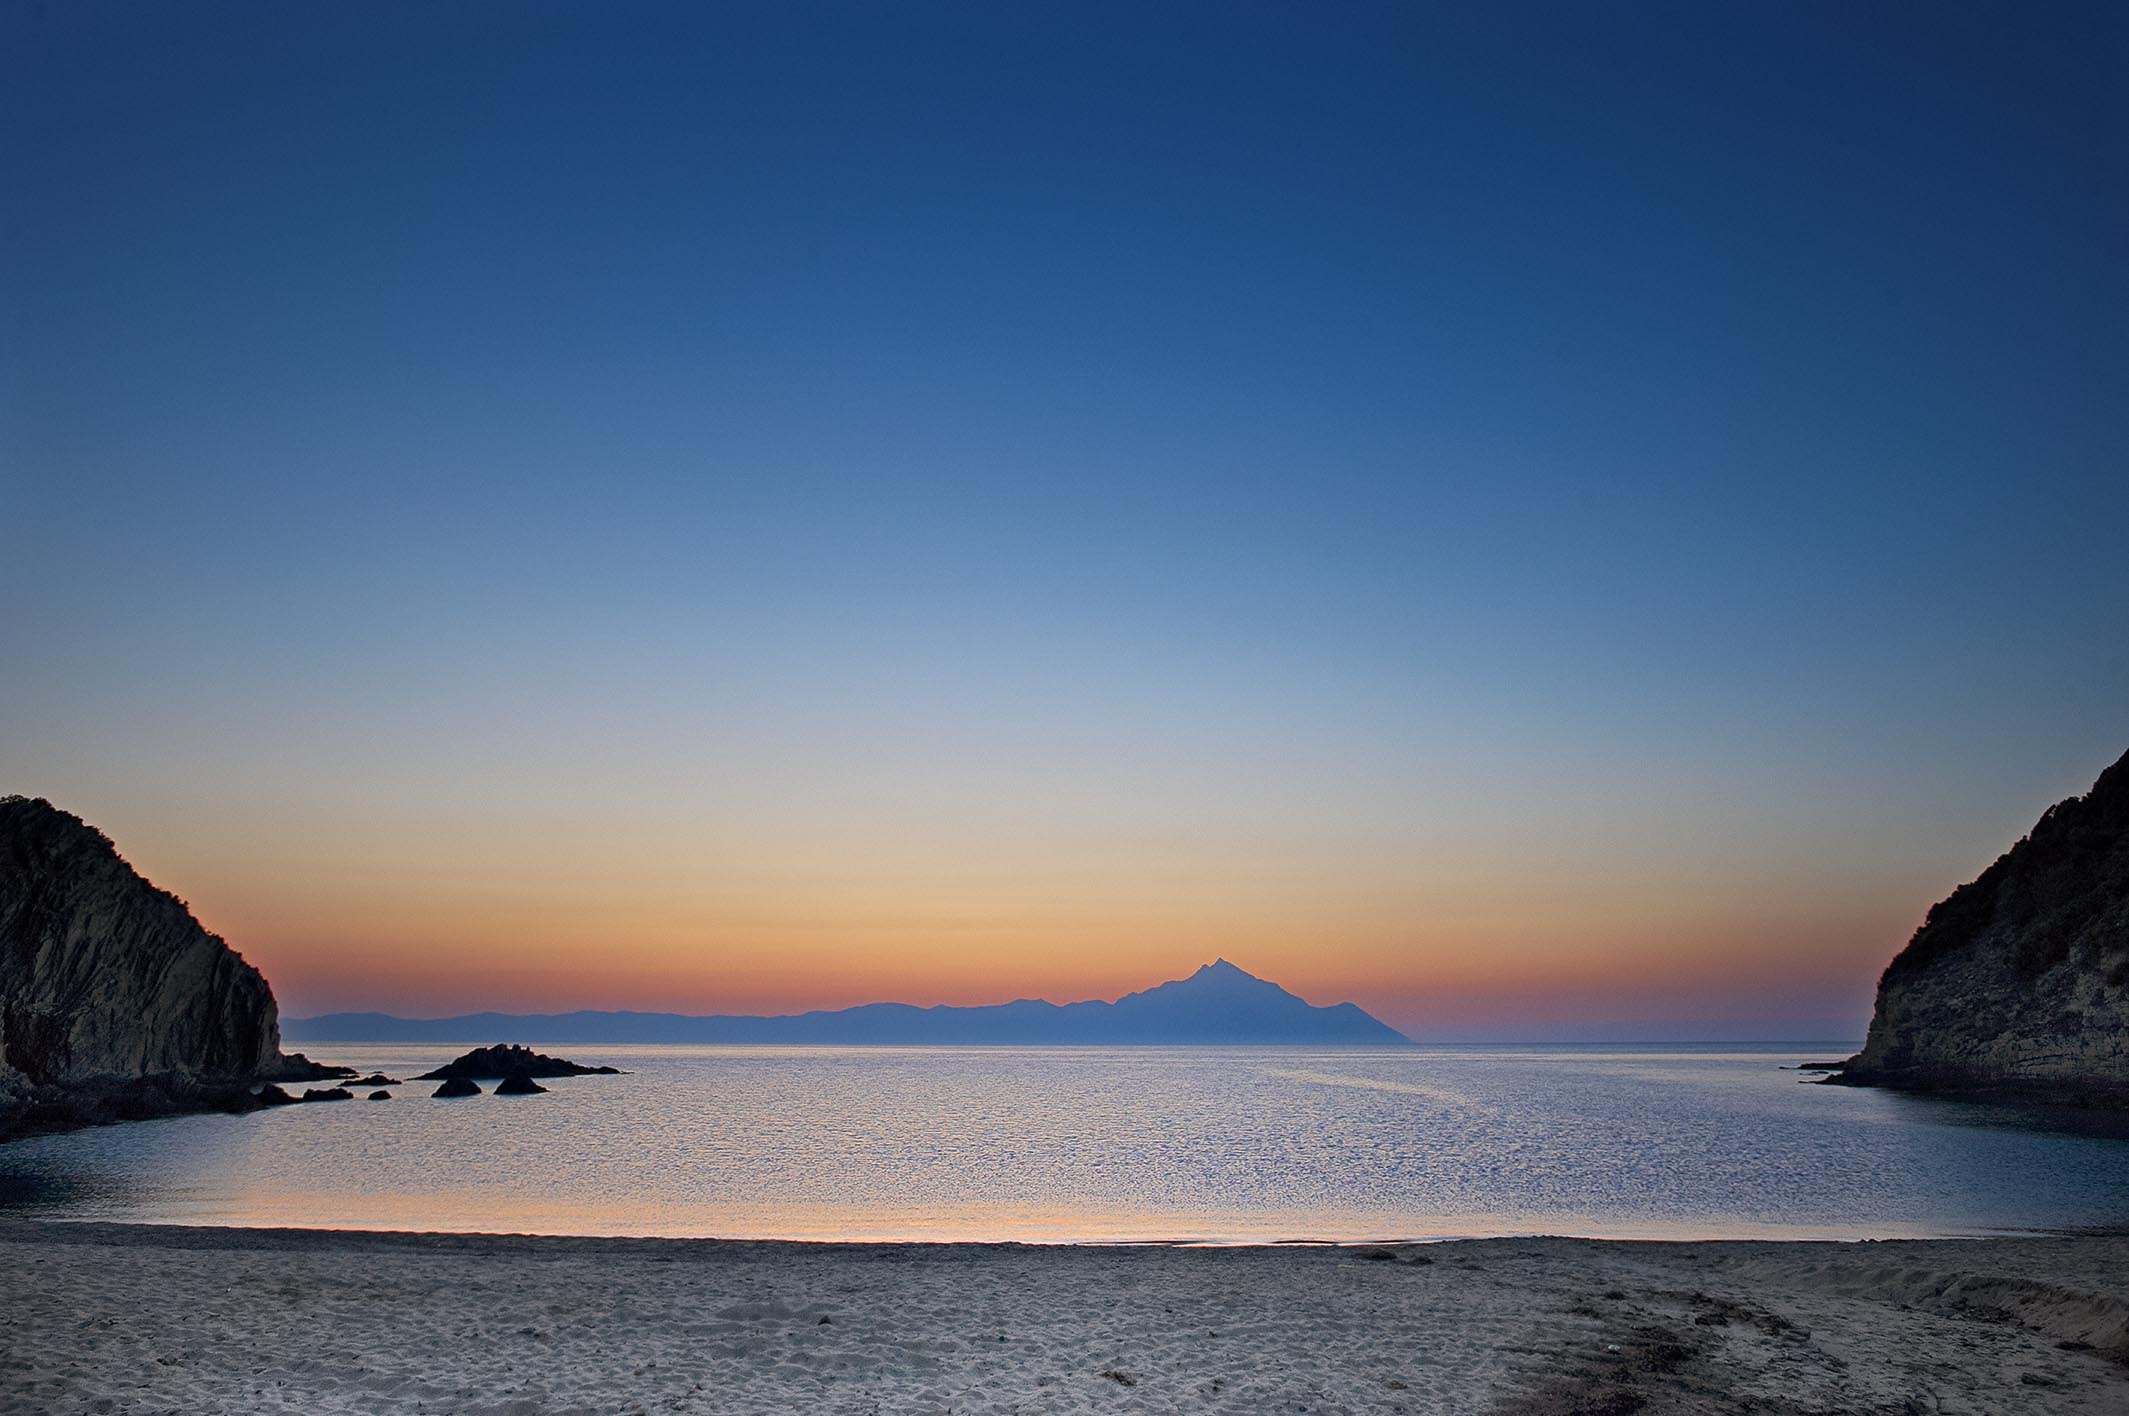 Halkidiki's beach at sunset